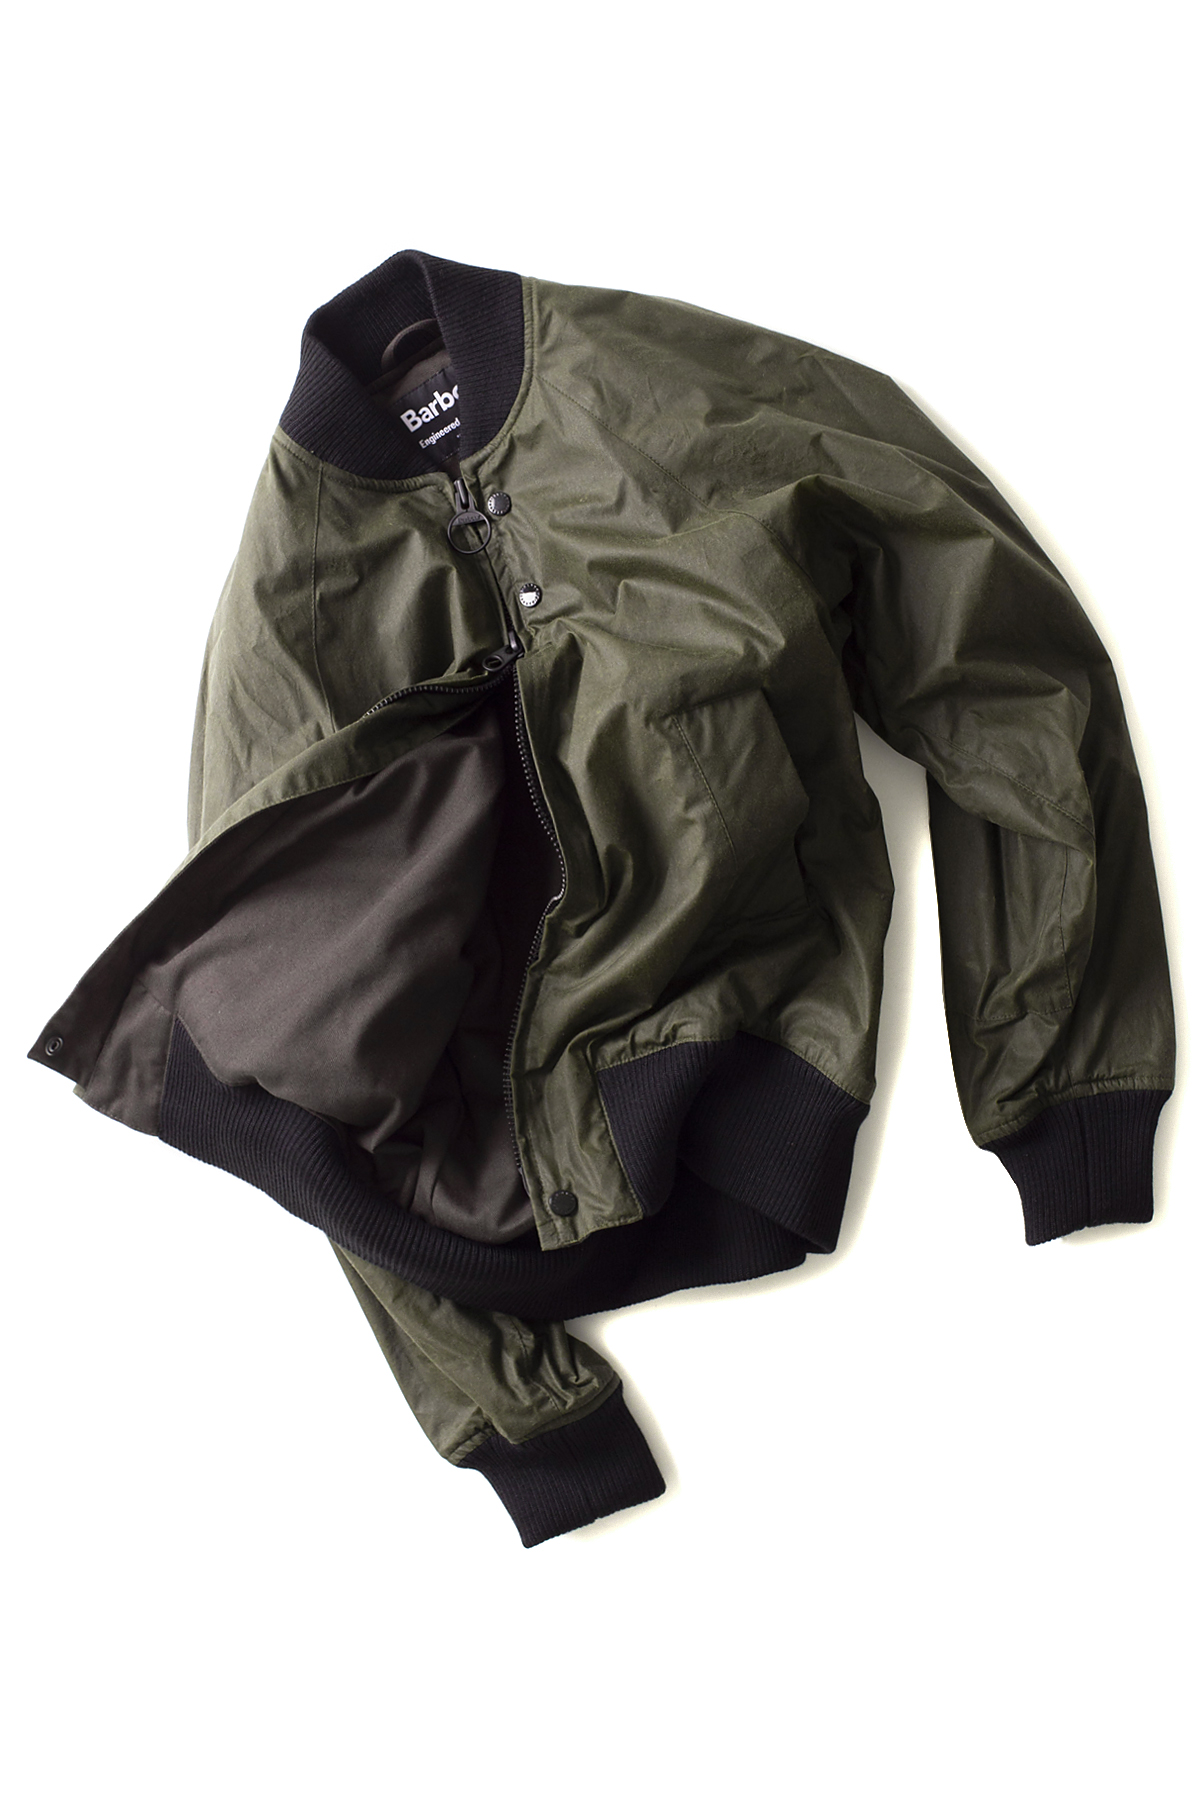 Barbour x Engineered Garments : Dumbo Wax Oilve Bomber Jacket (Olive)